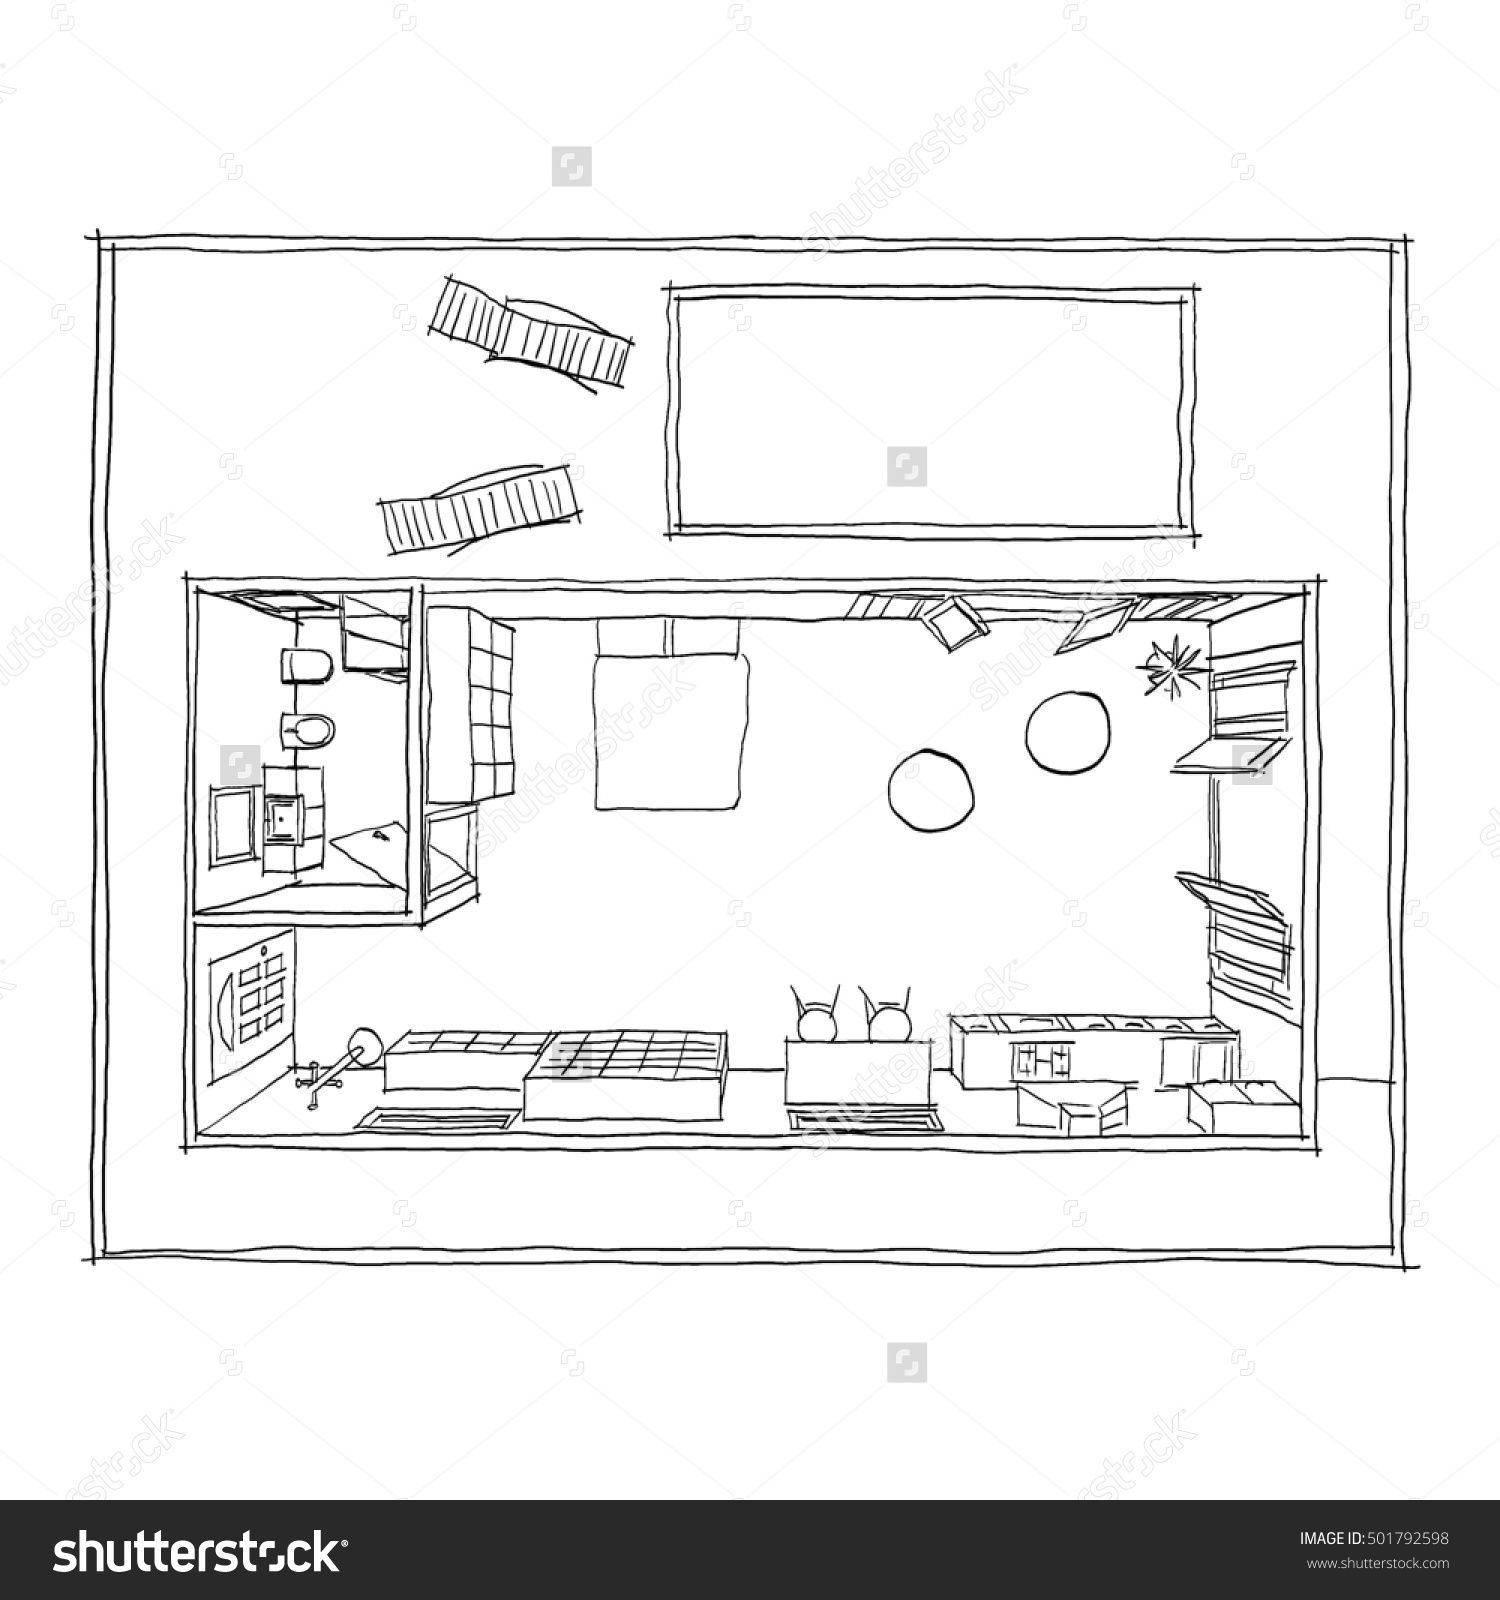 Black Pen Freehand Sketch Drawing Of Furnished Bungalow Loft Home Apartment With Swimming Pool